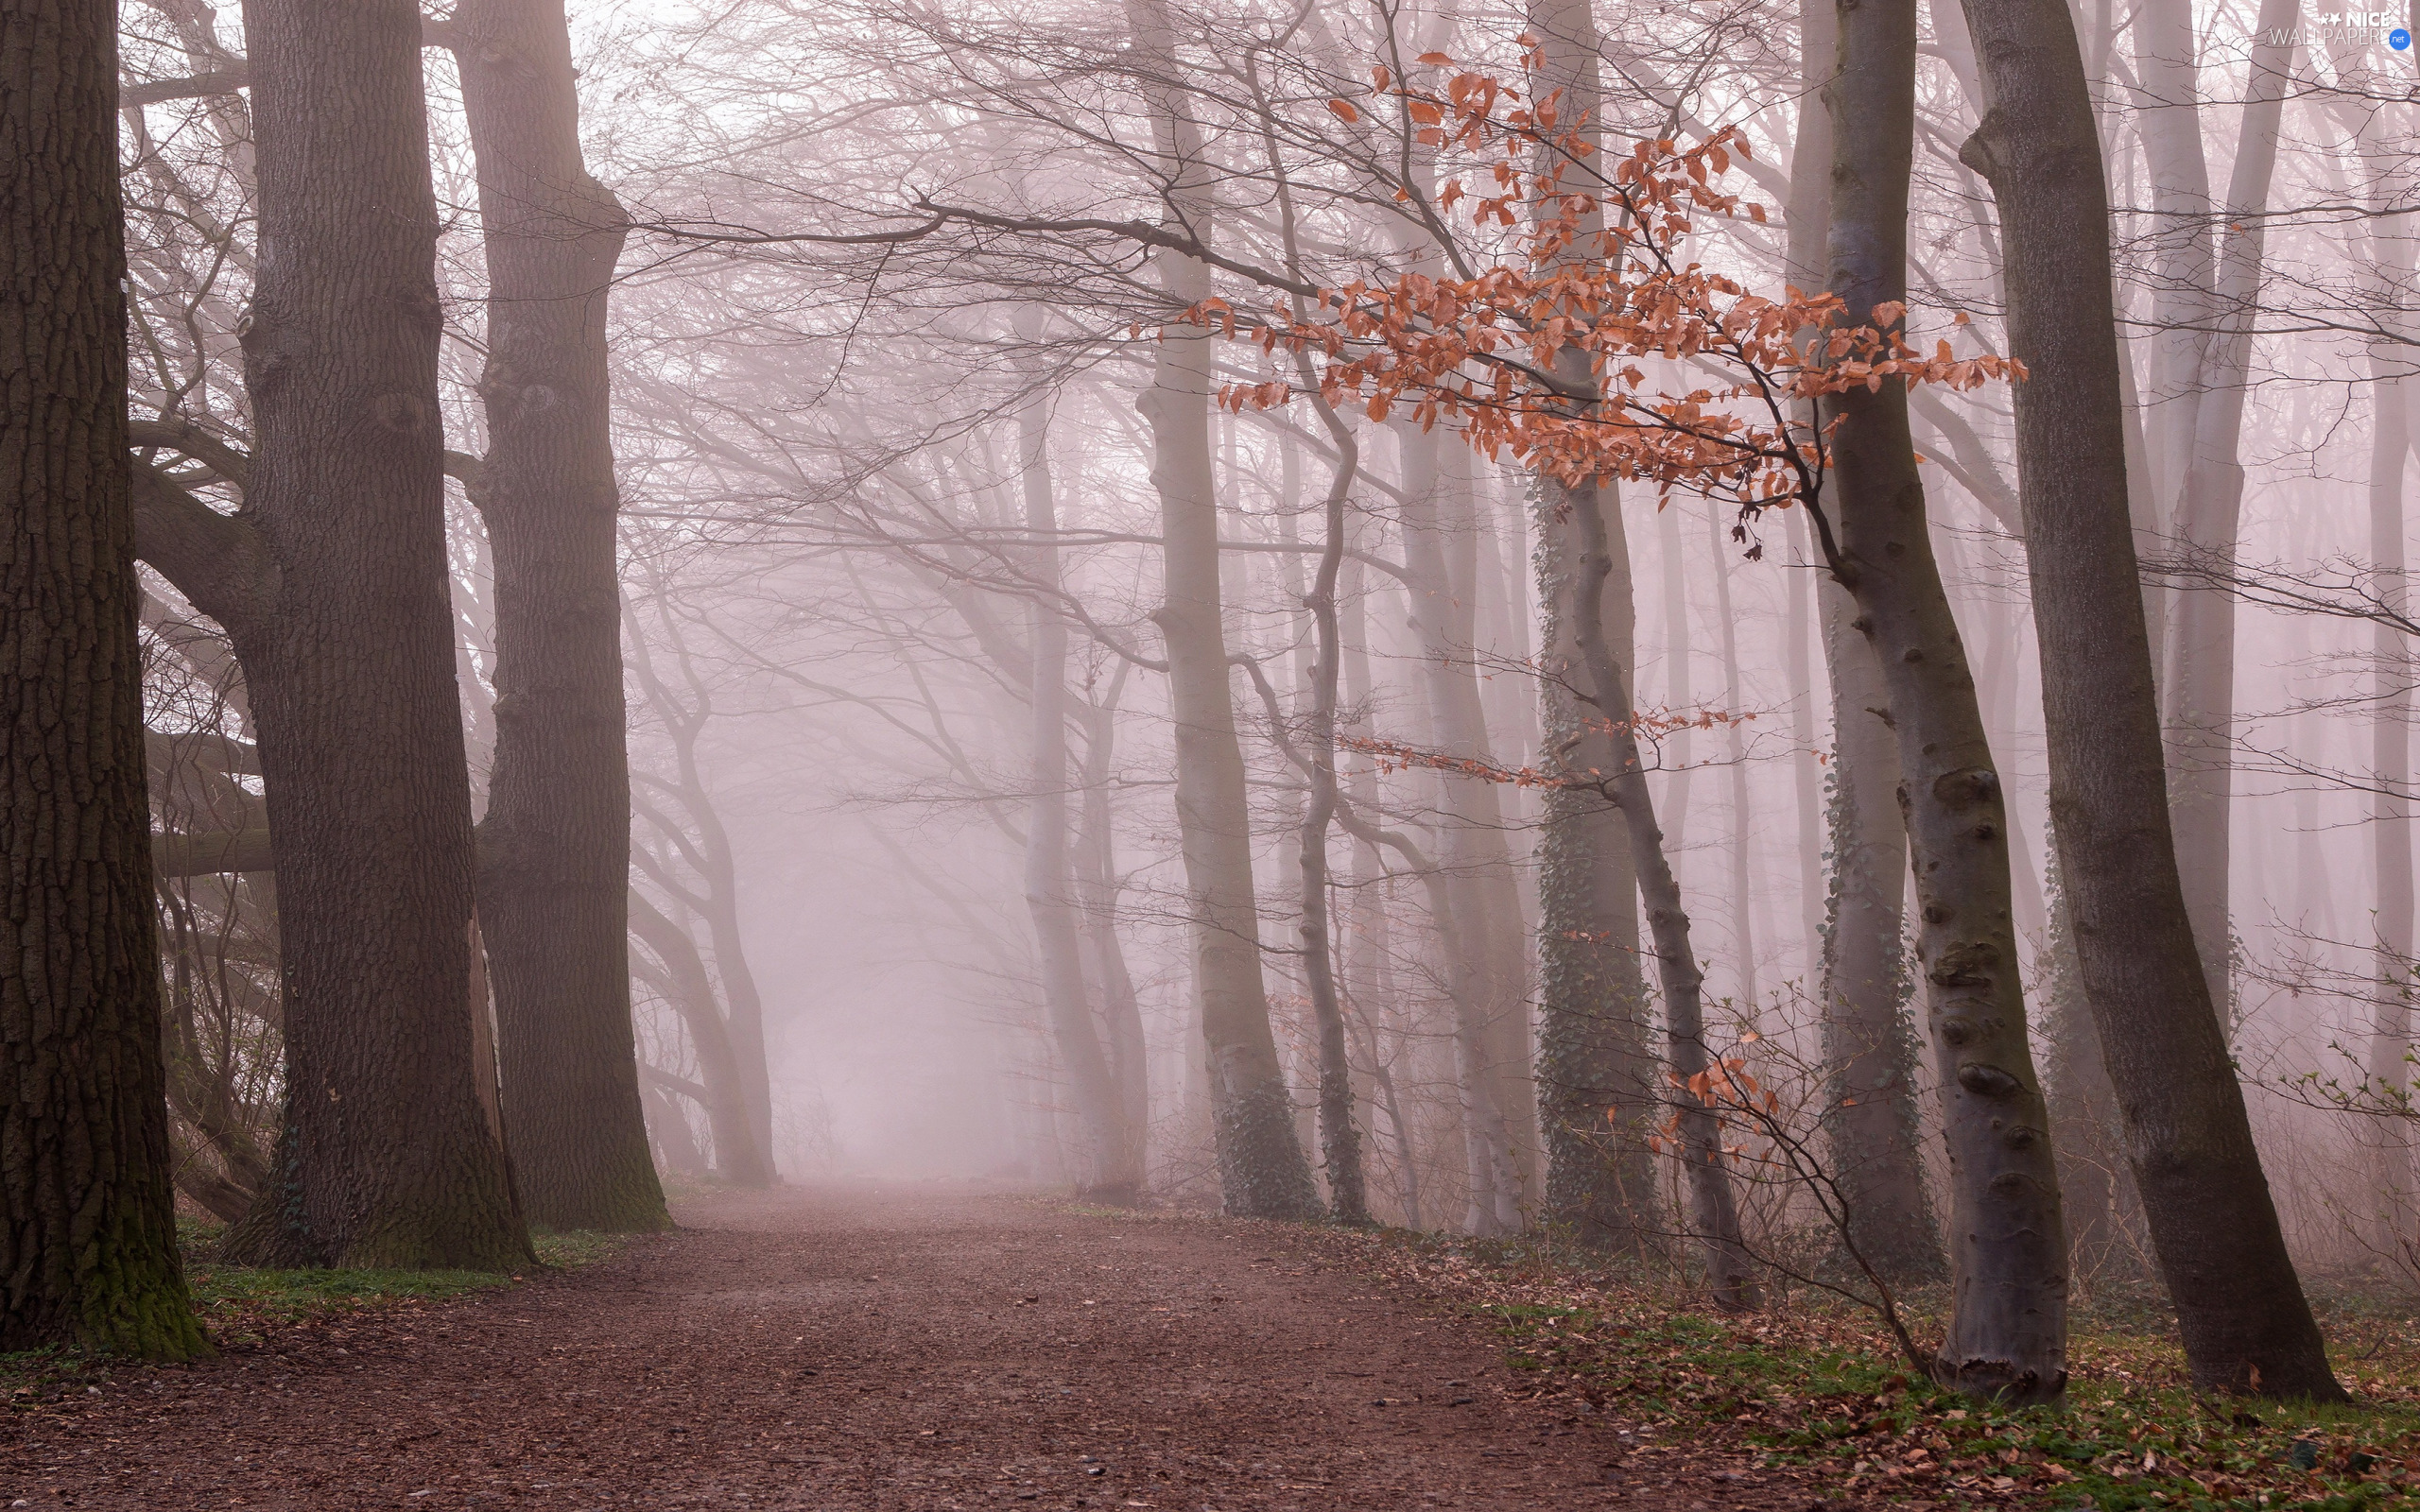 forest, autumn, trees, viewes, morning, Way, Fog, Leaf, branch pics